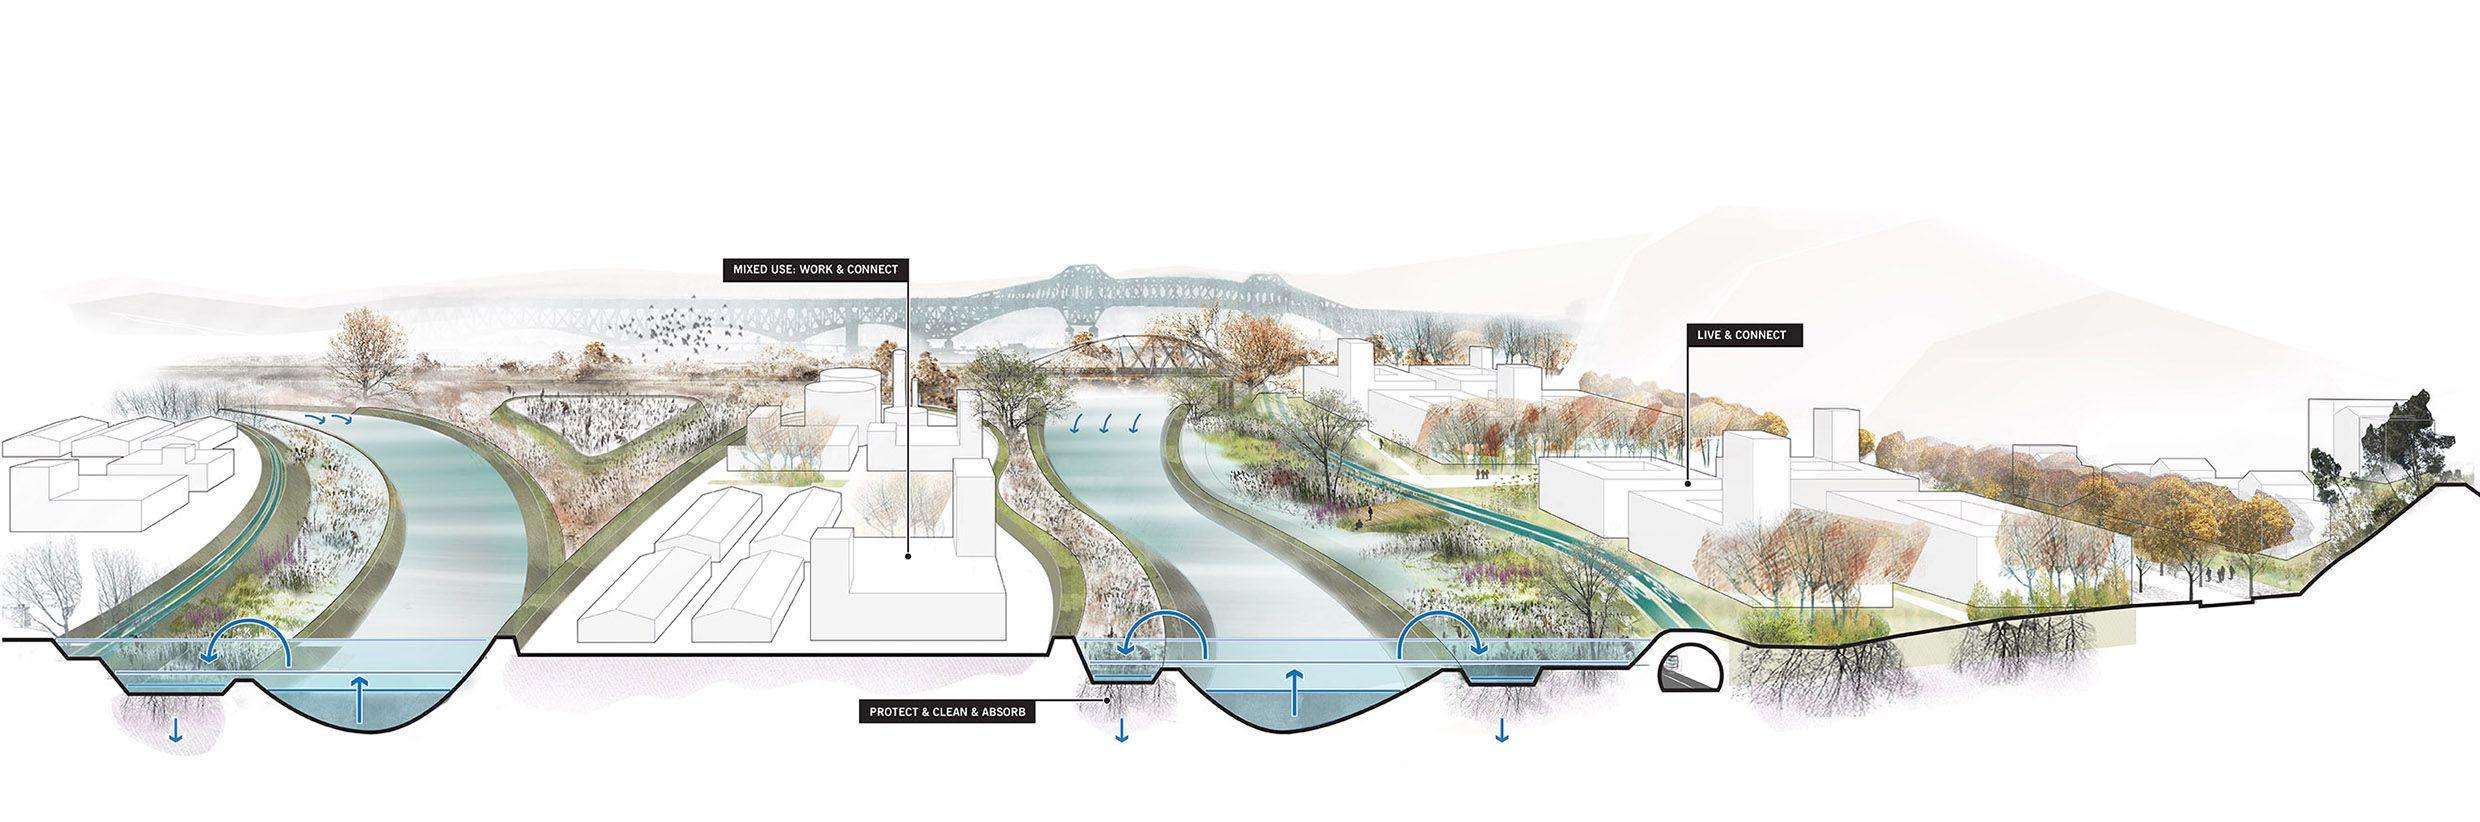 Rebuild By Design A Regional Analysis New Meadowlands Productive City Regional Park Arquitectura